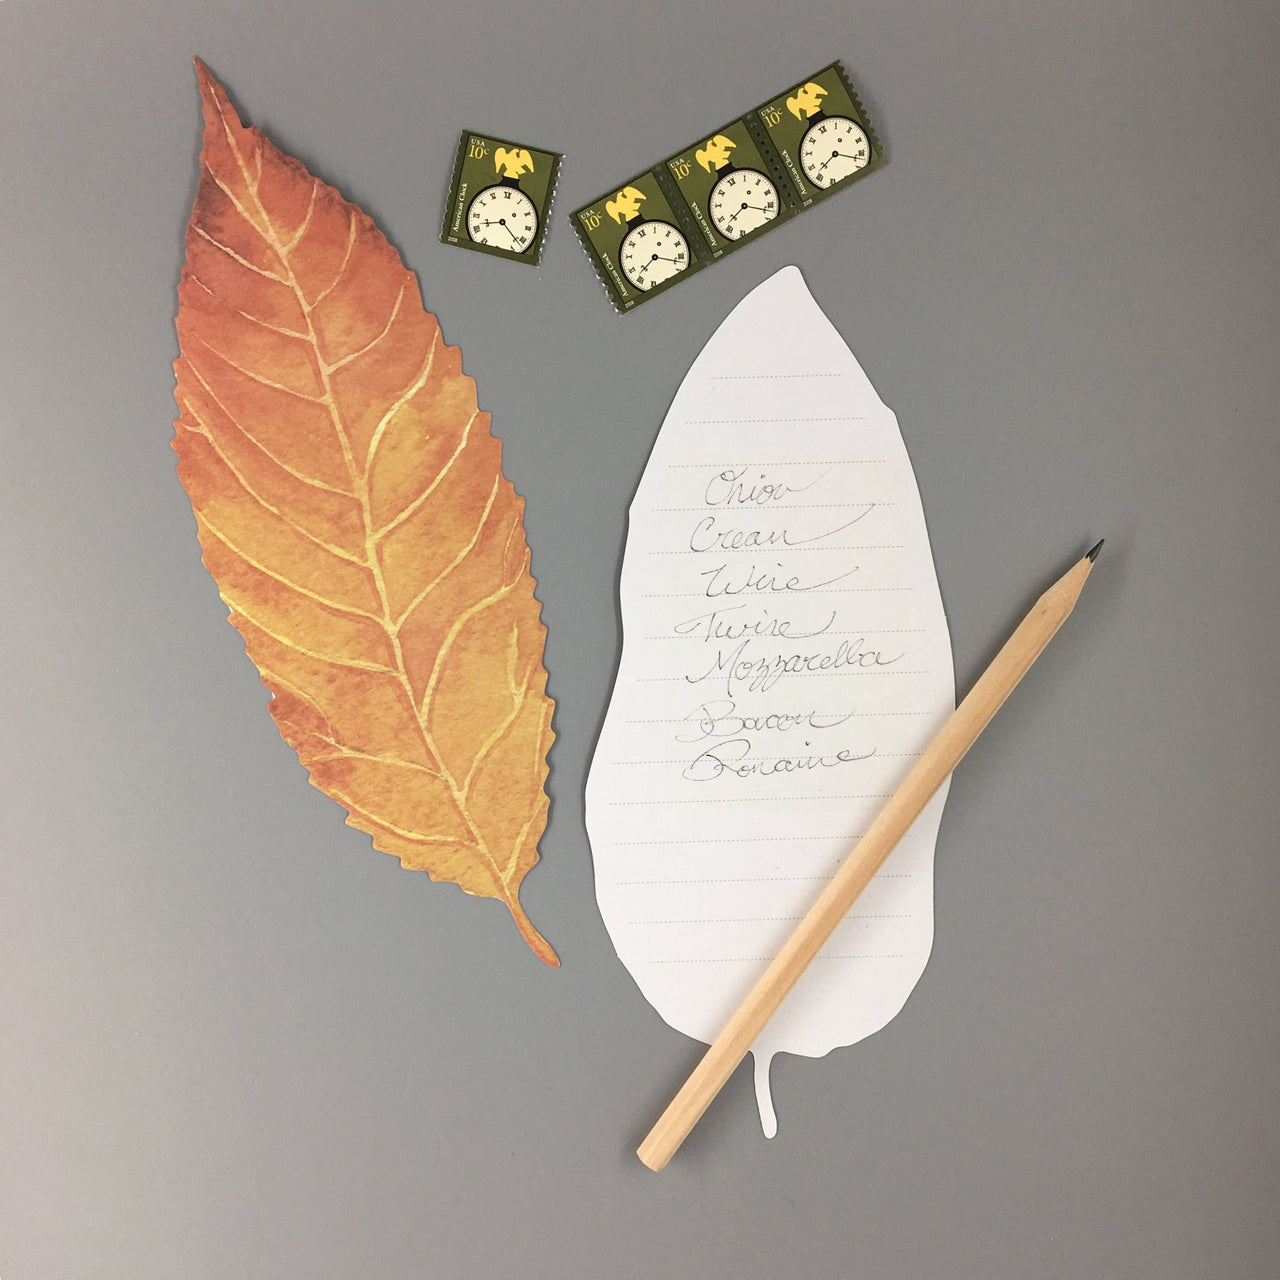 Four Seasons Leaf Notes